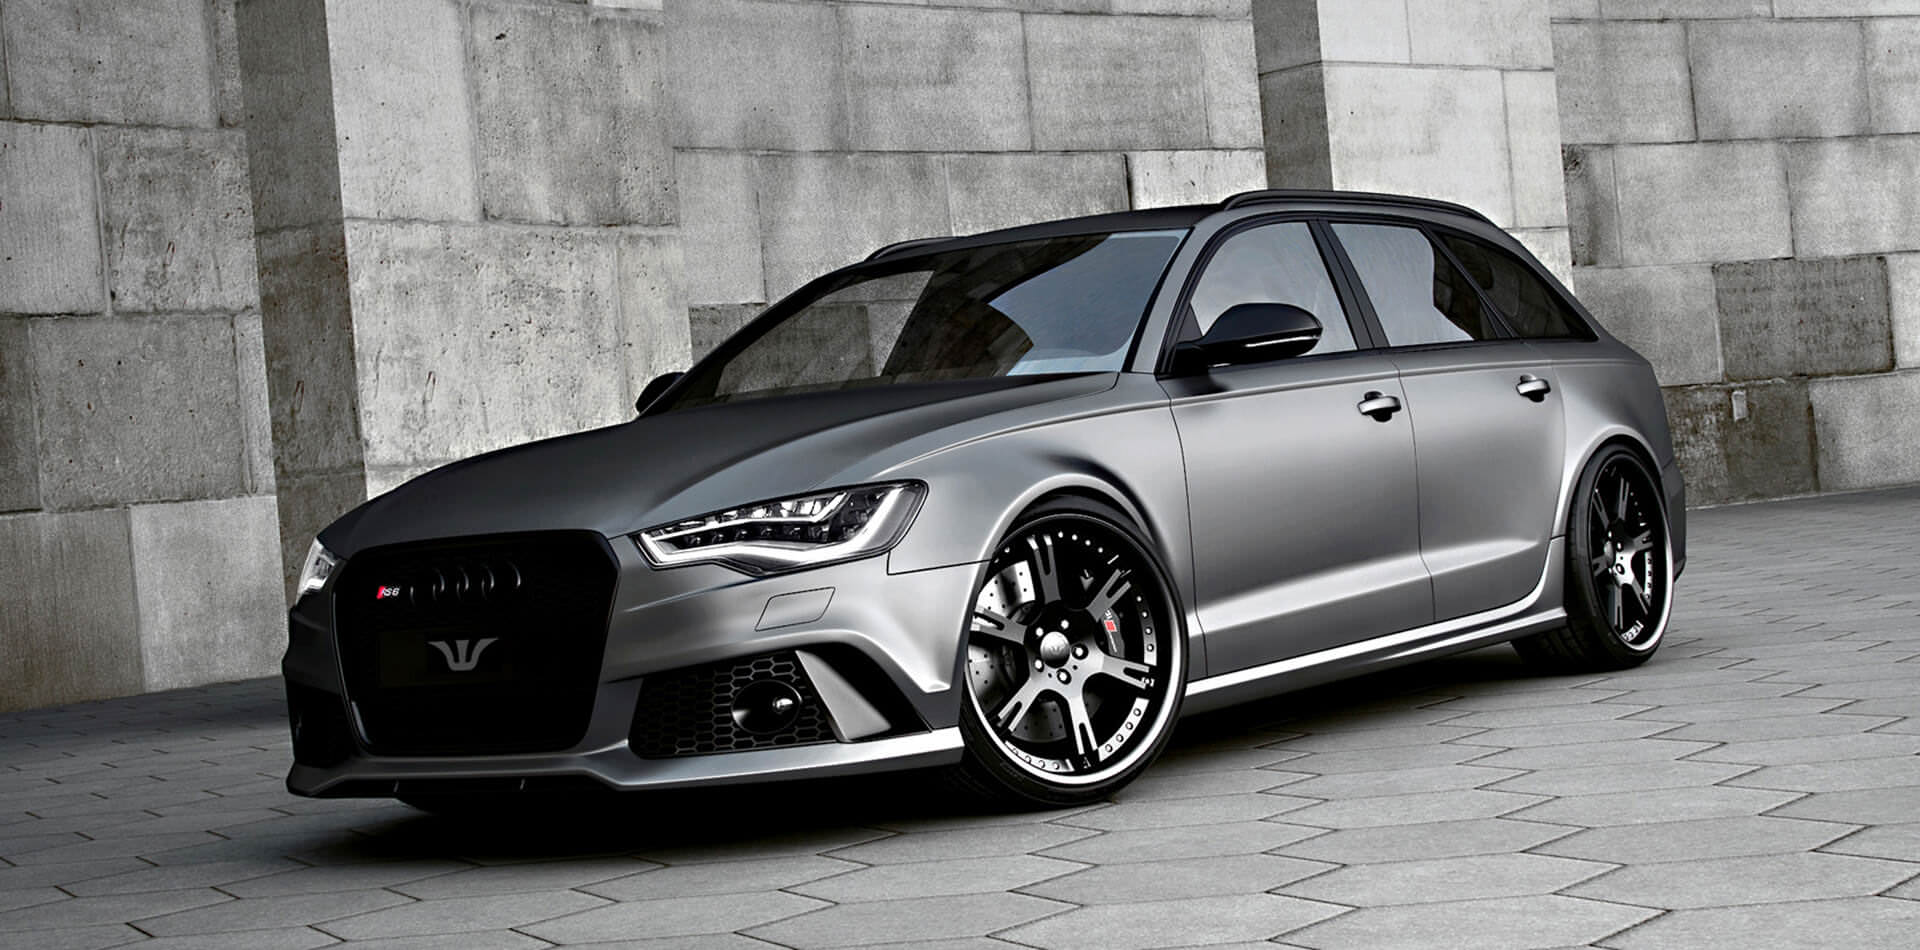 audi rs6 felgen in 21 zoll und 22 zoll wheelsandmore. Black Bedroom Furniture Sets. Home Design Ideas